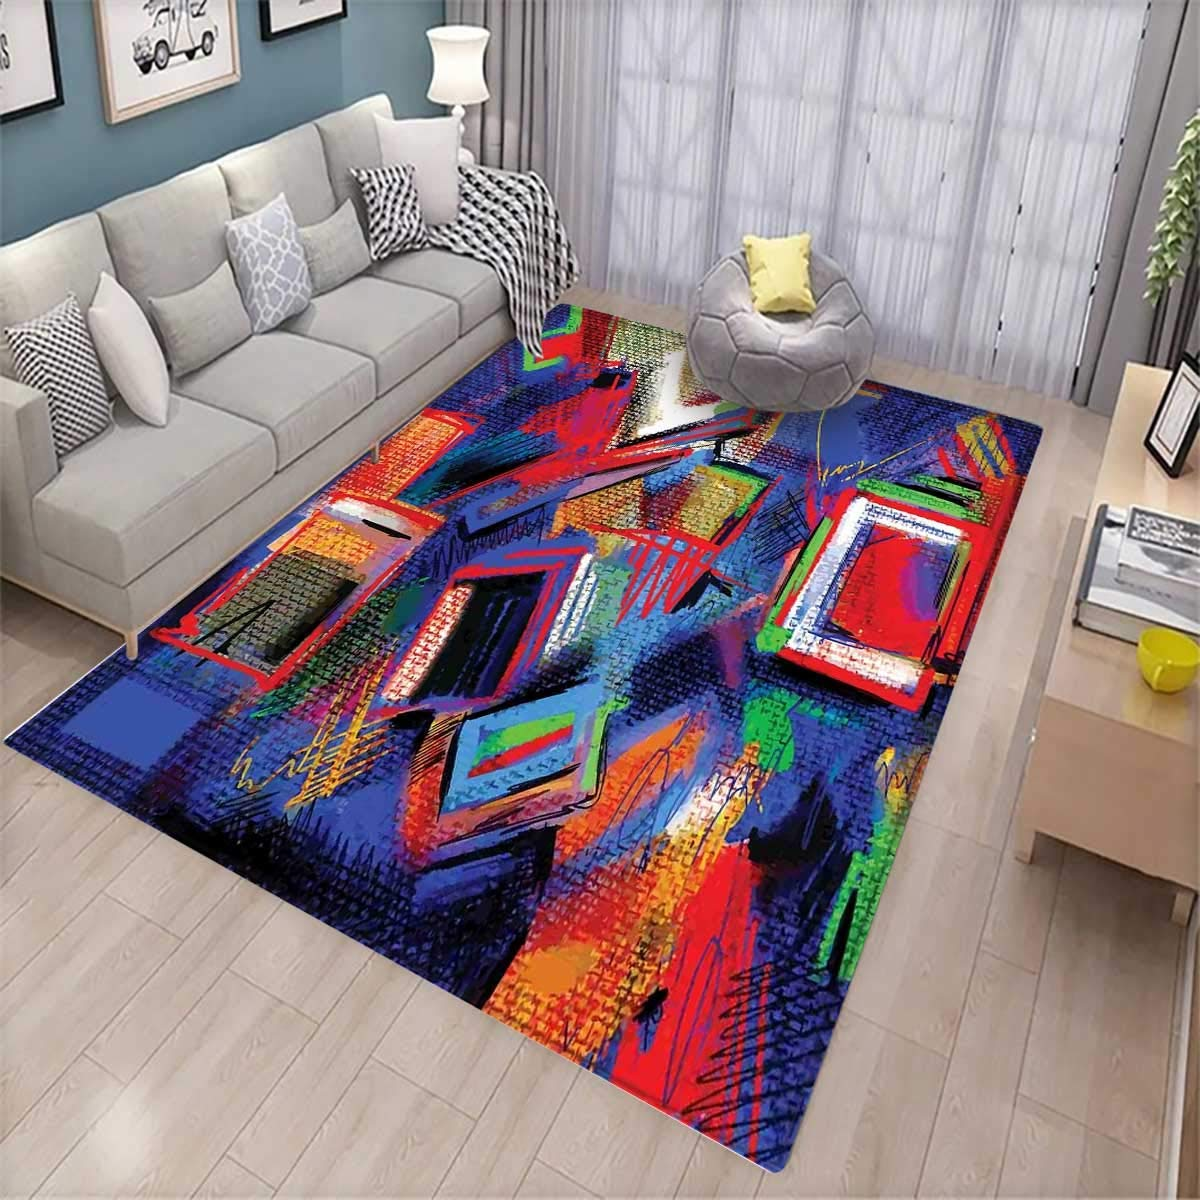 Contemporary Room Home Bedroom Carpet Floor Mat Abstract Hand Painted Style Composition Artistic Creativity Modern Grunge Look Floor Mat Pattern Multicolor